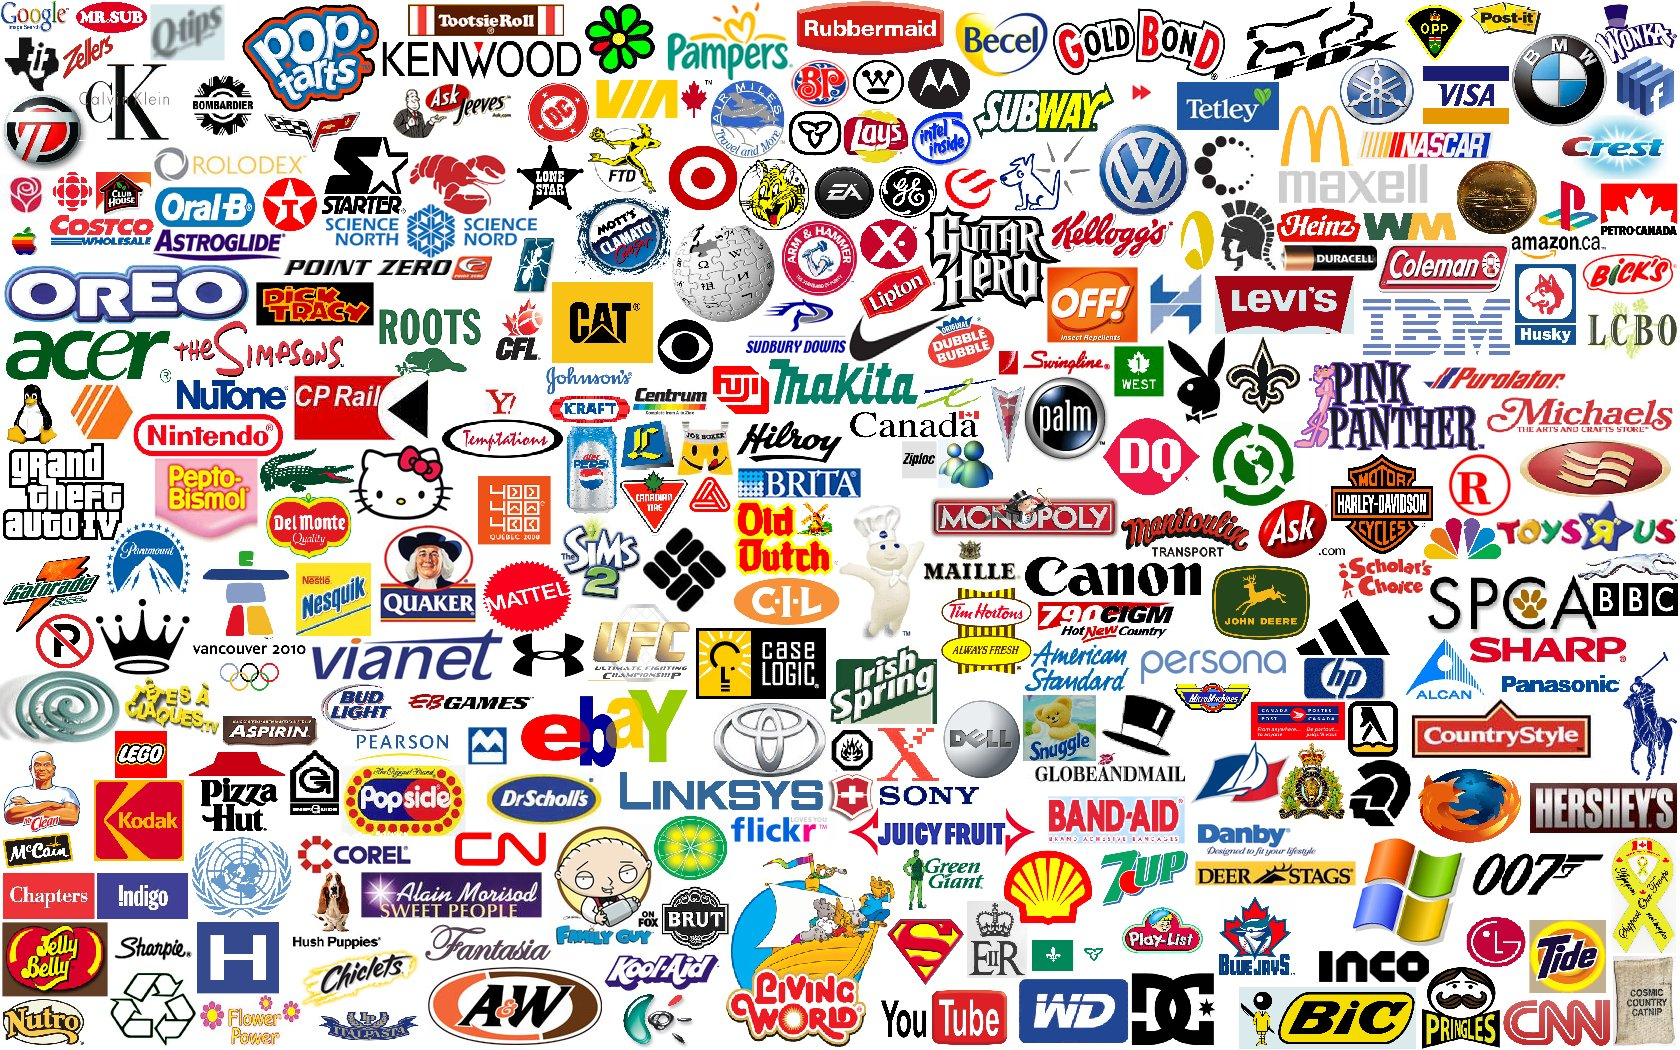 All Popular Brands in One Picture 872.64 Kb